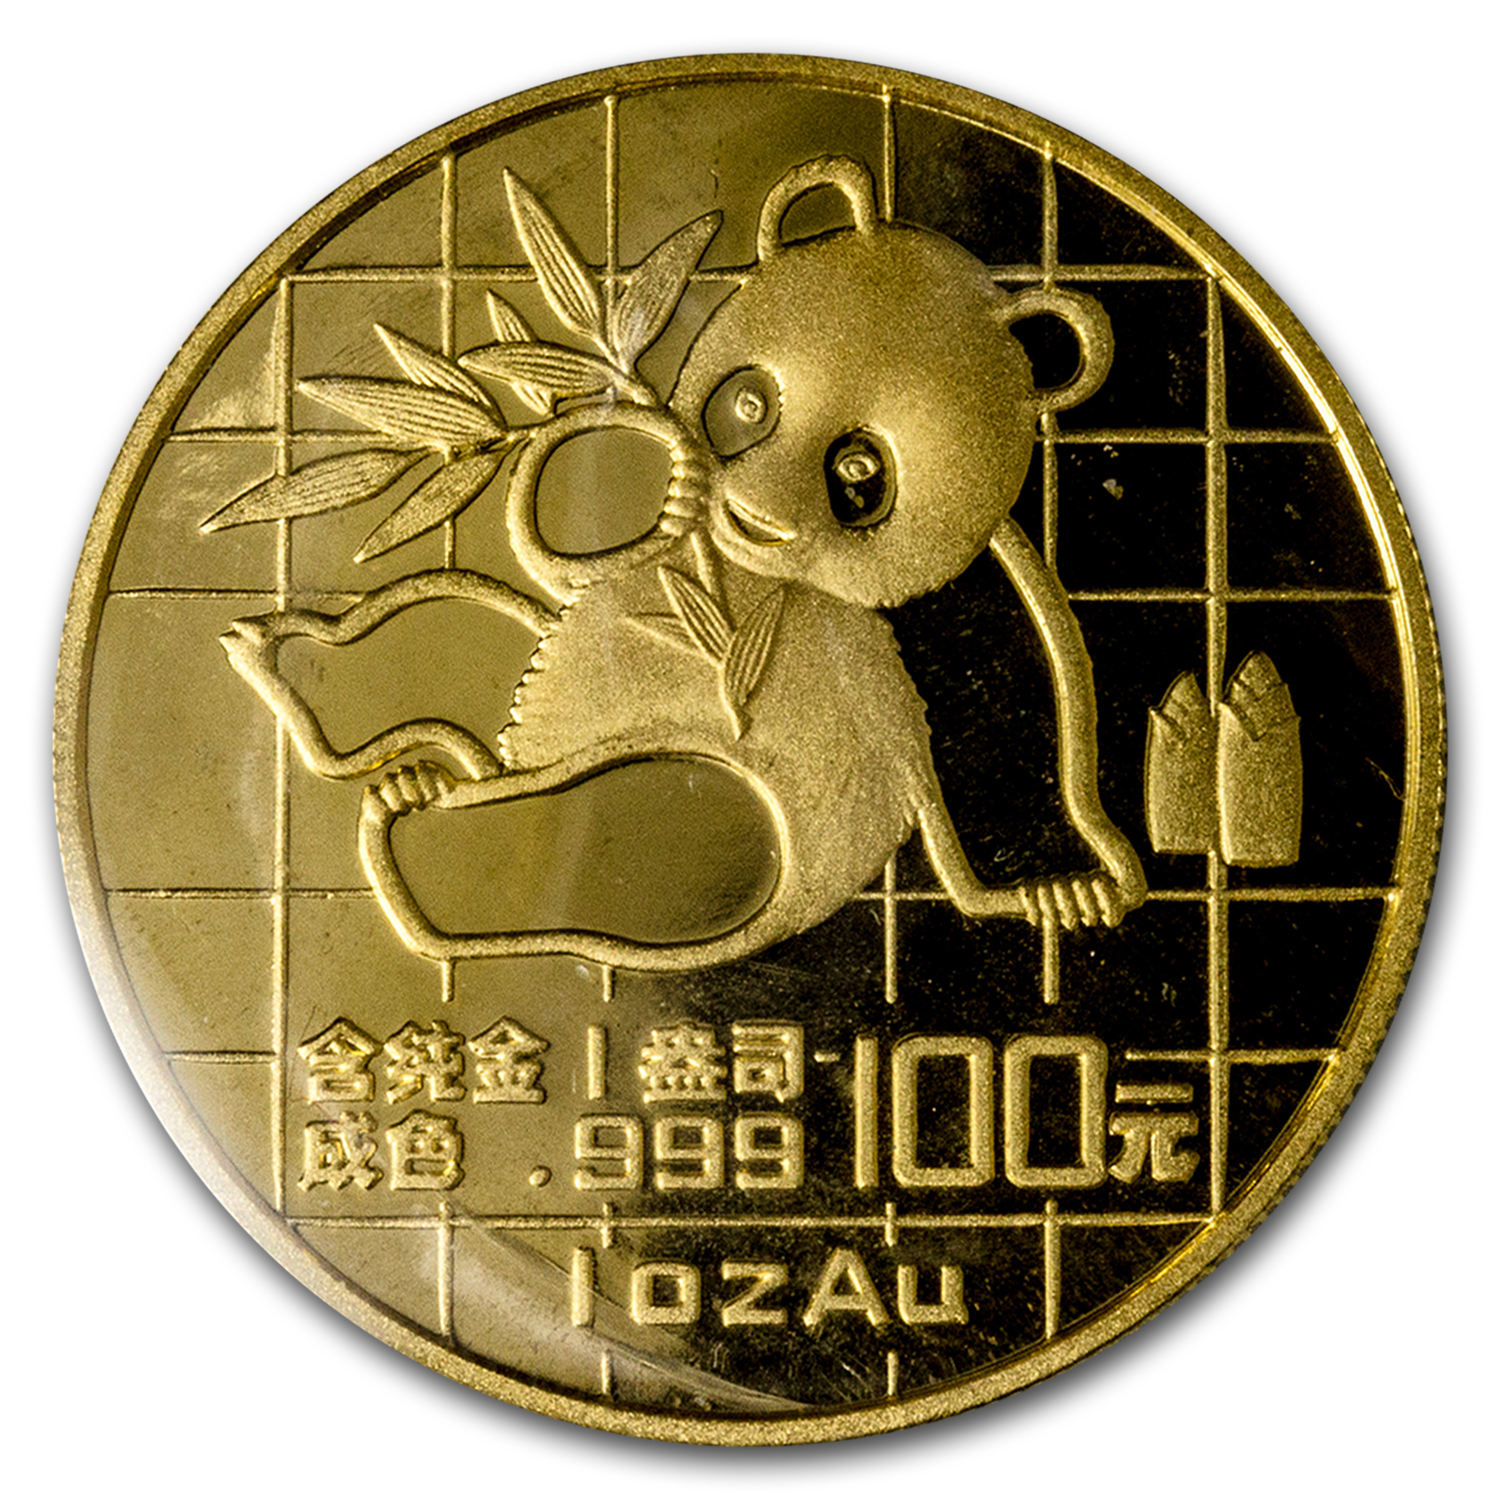 1989 1 oz Gold Chinese Panda Large Date BU (Sealed)